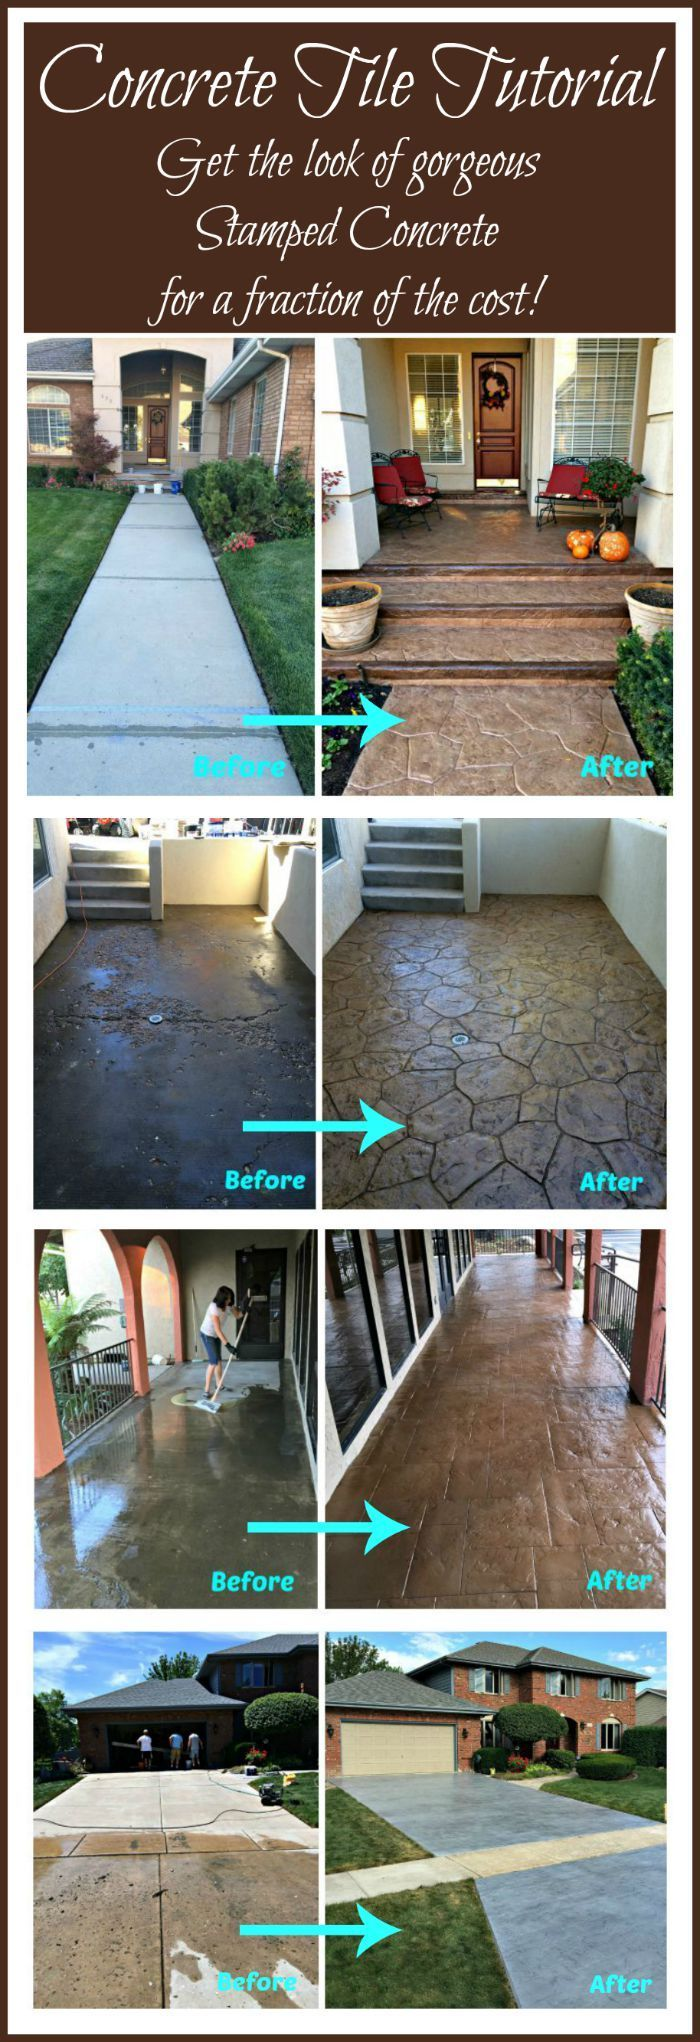 DIY CONCRETE TILE TUTORIAL   Full Step By Step Tutor Ial On How To Get The  Look Of Stamped Concrete For A Fraction Of The Cost, Using Concrete Tiles!